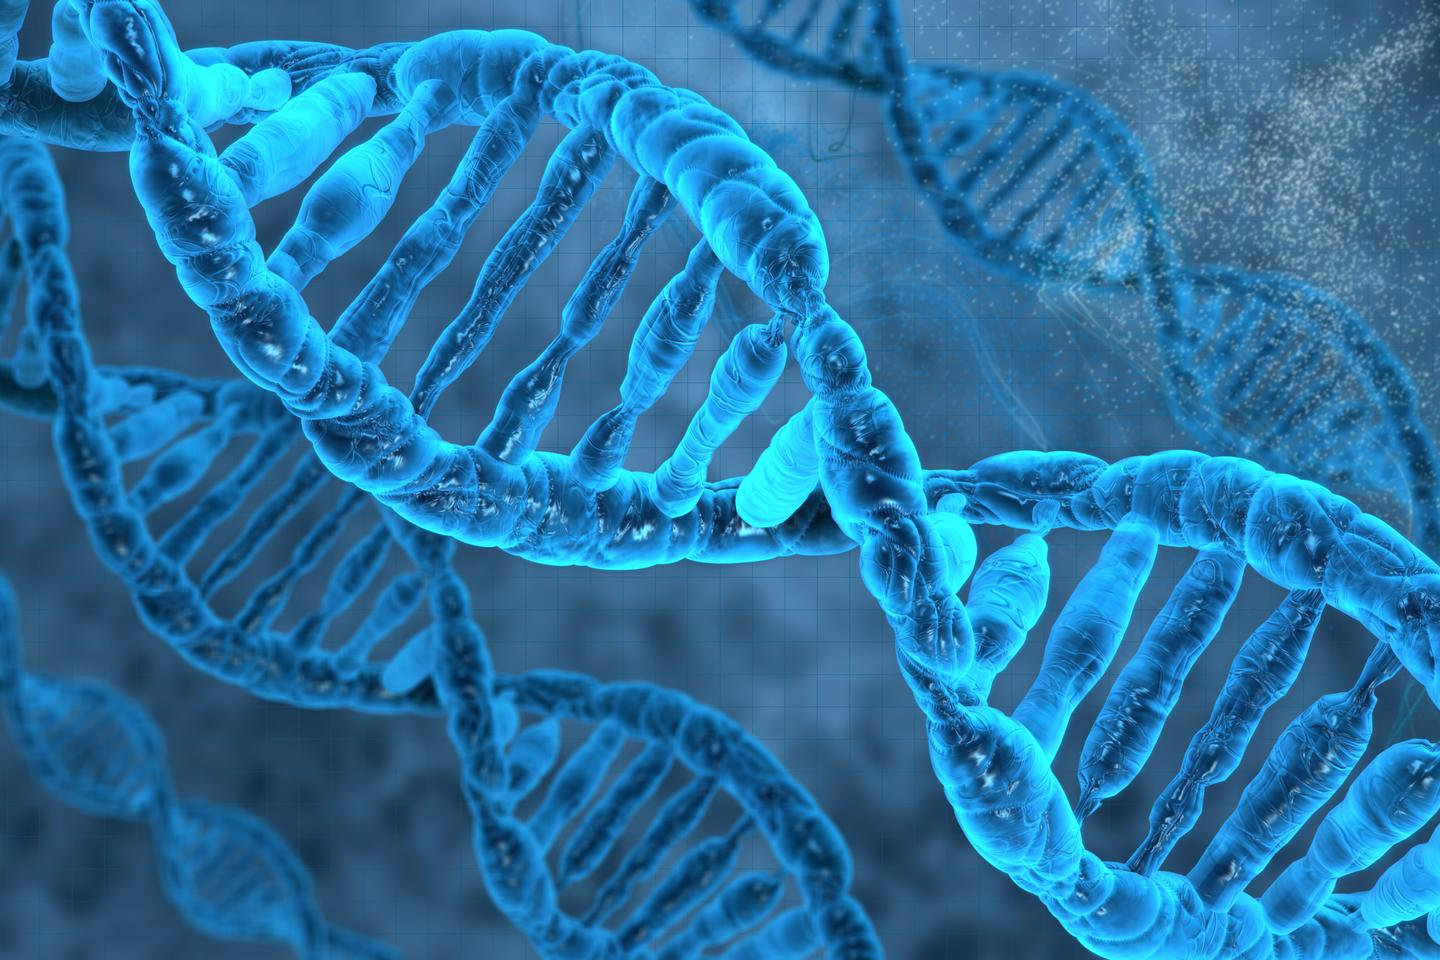 The researchers have turned off genes associated with five different cancer cell lines